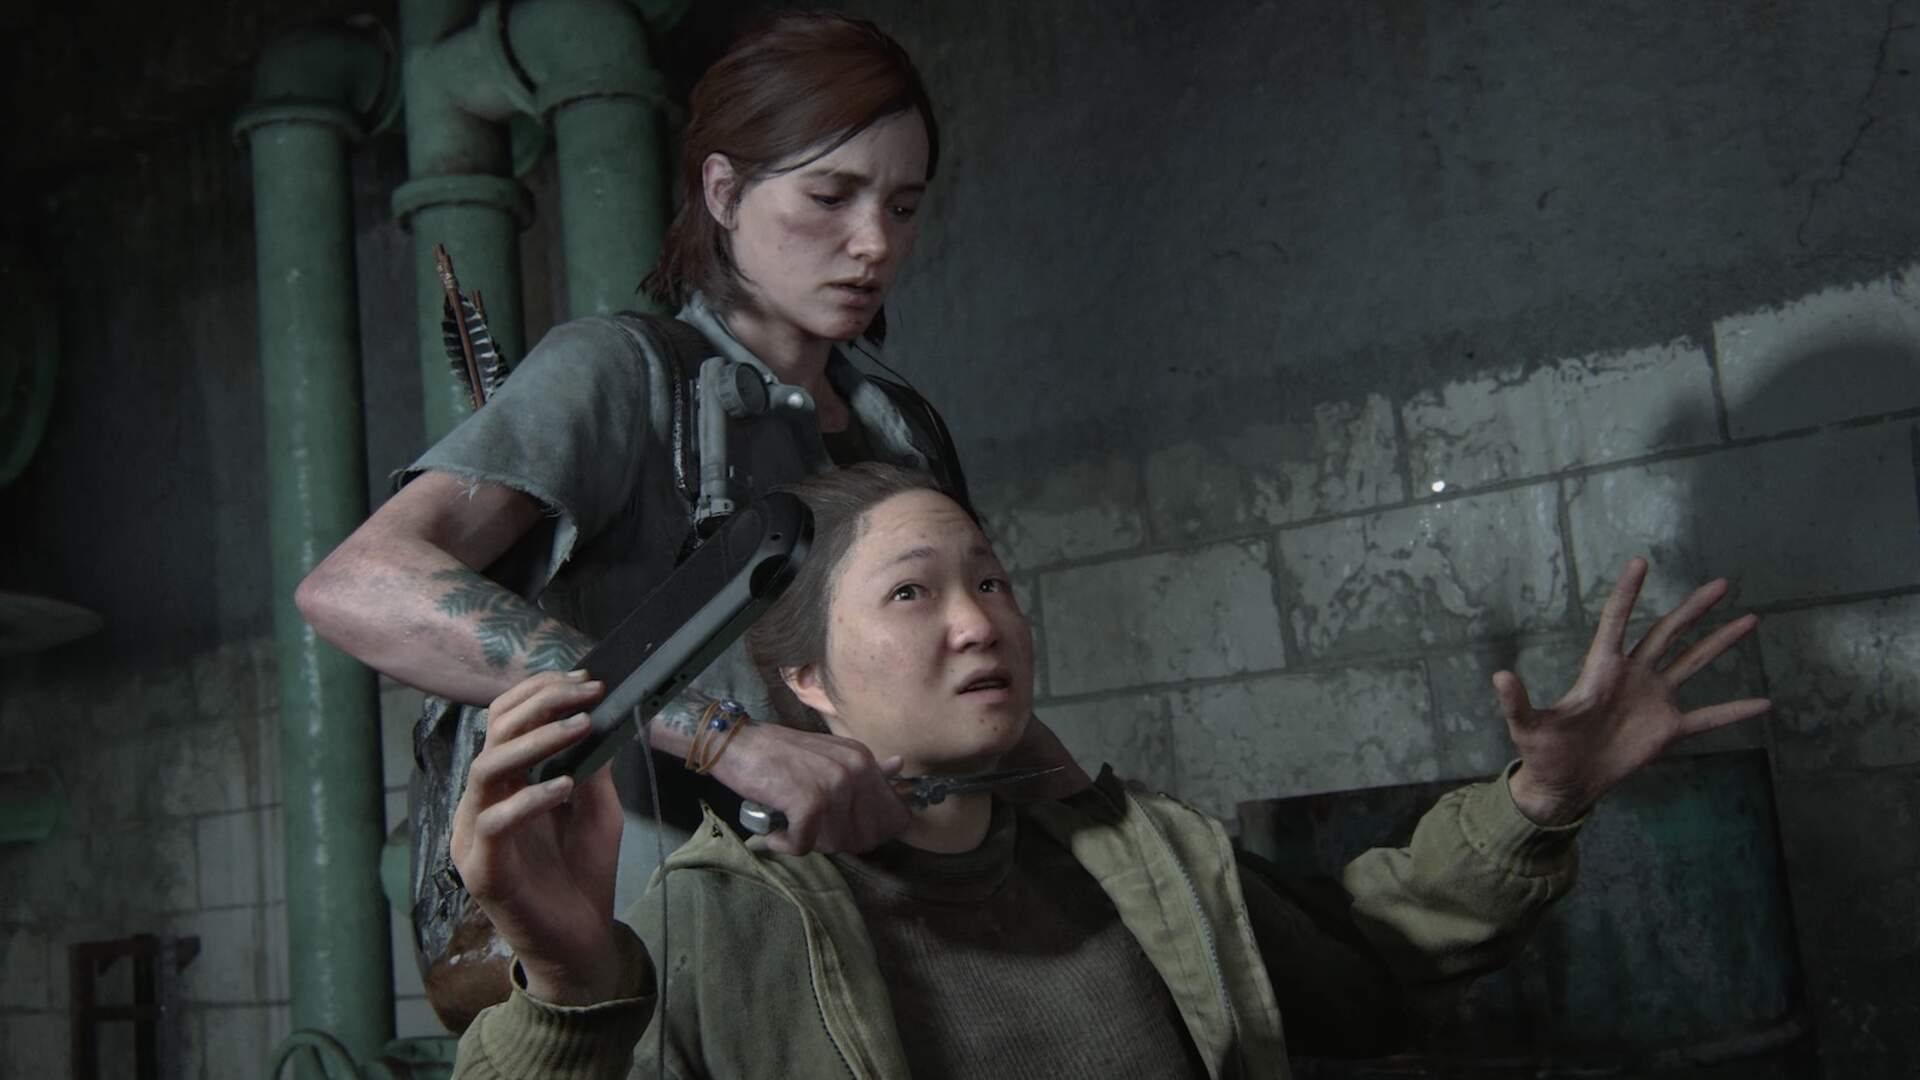 The Last of Us Part 2 Takes Home Top Prize at The Game Awards: Here Are All the Winners